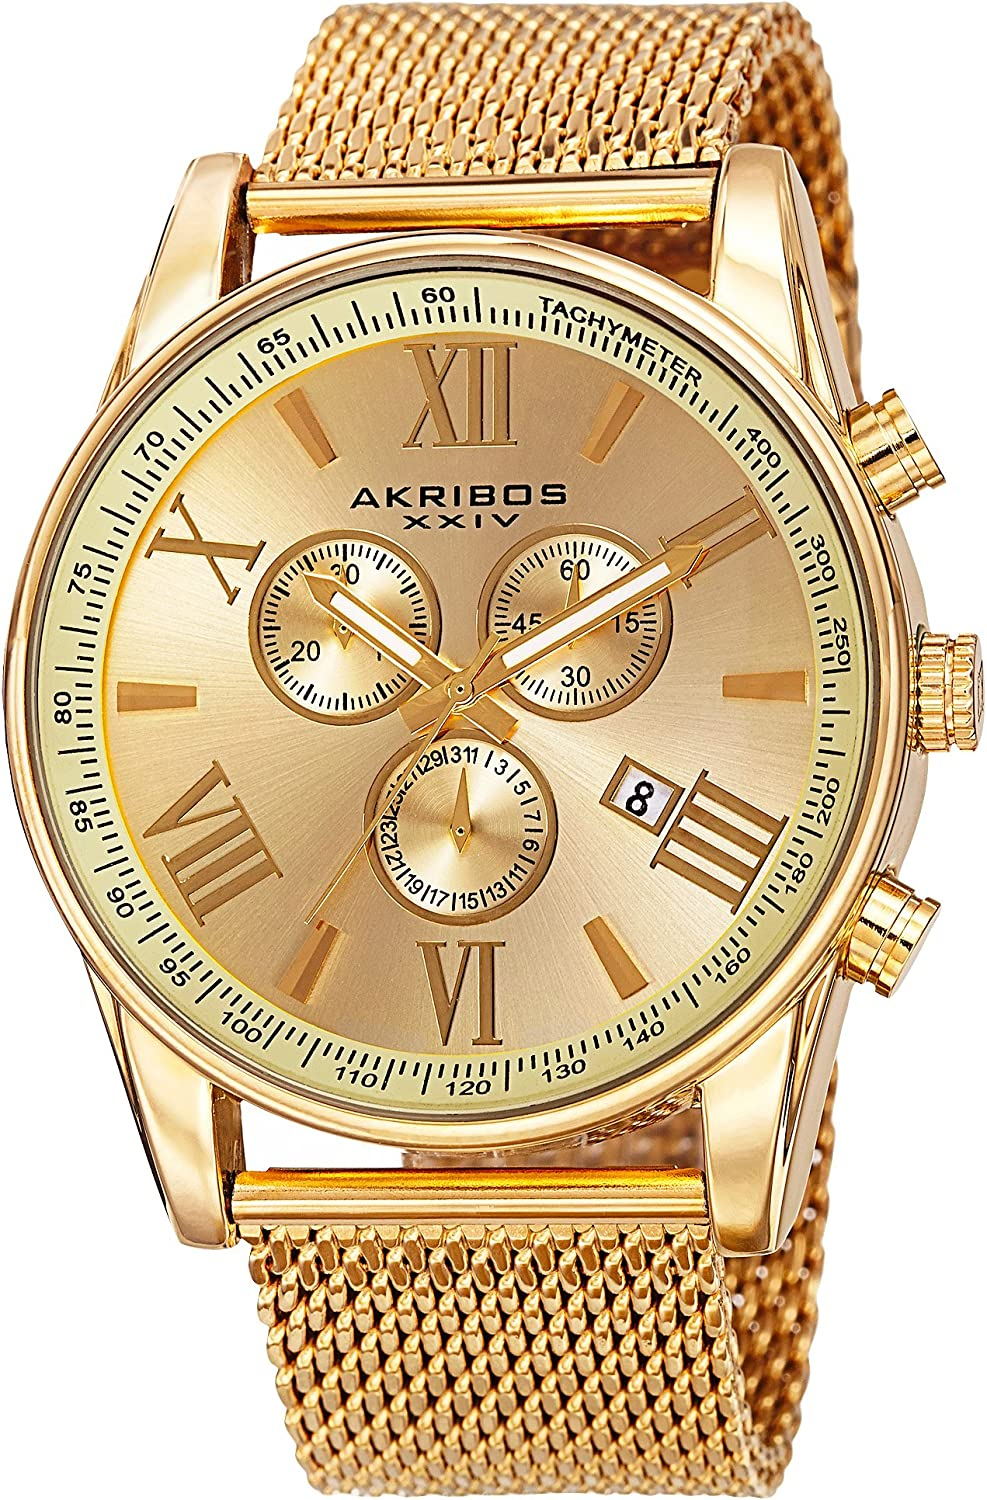 Akribos XXIV Swiss Chronograph Men's Watch - 3 Subdials with Date Window Sunburst Dial On Stainless Steel Mesh Strap - AK813